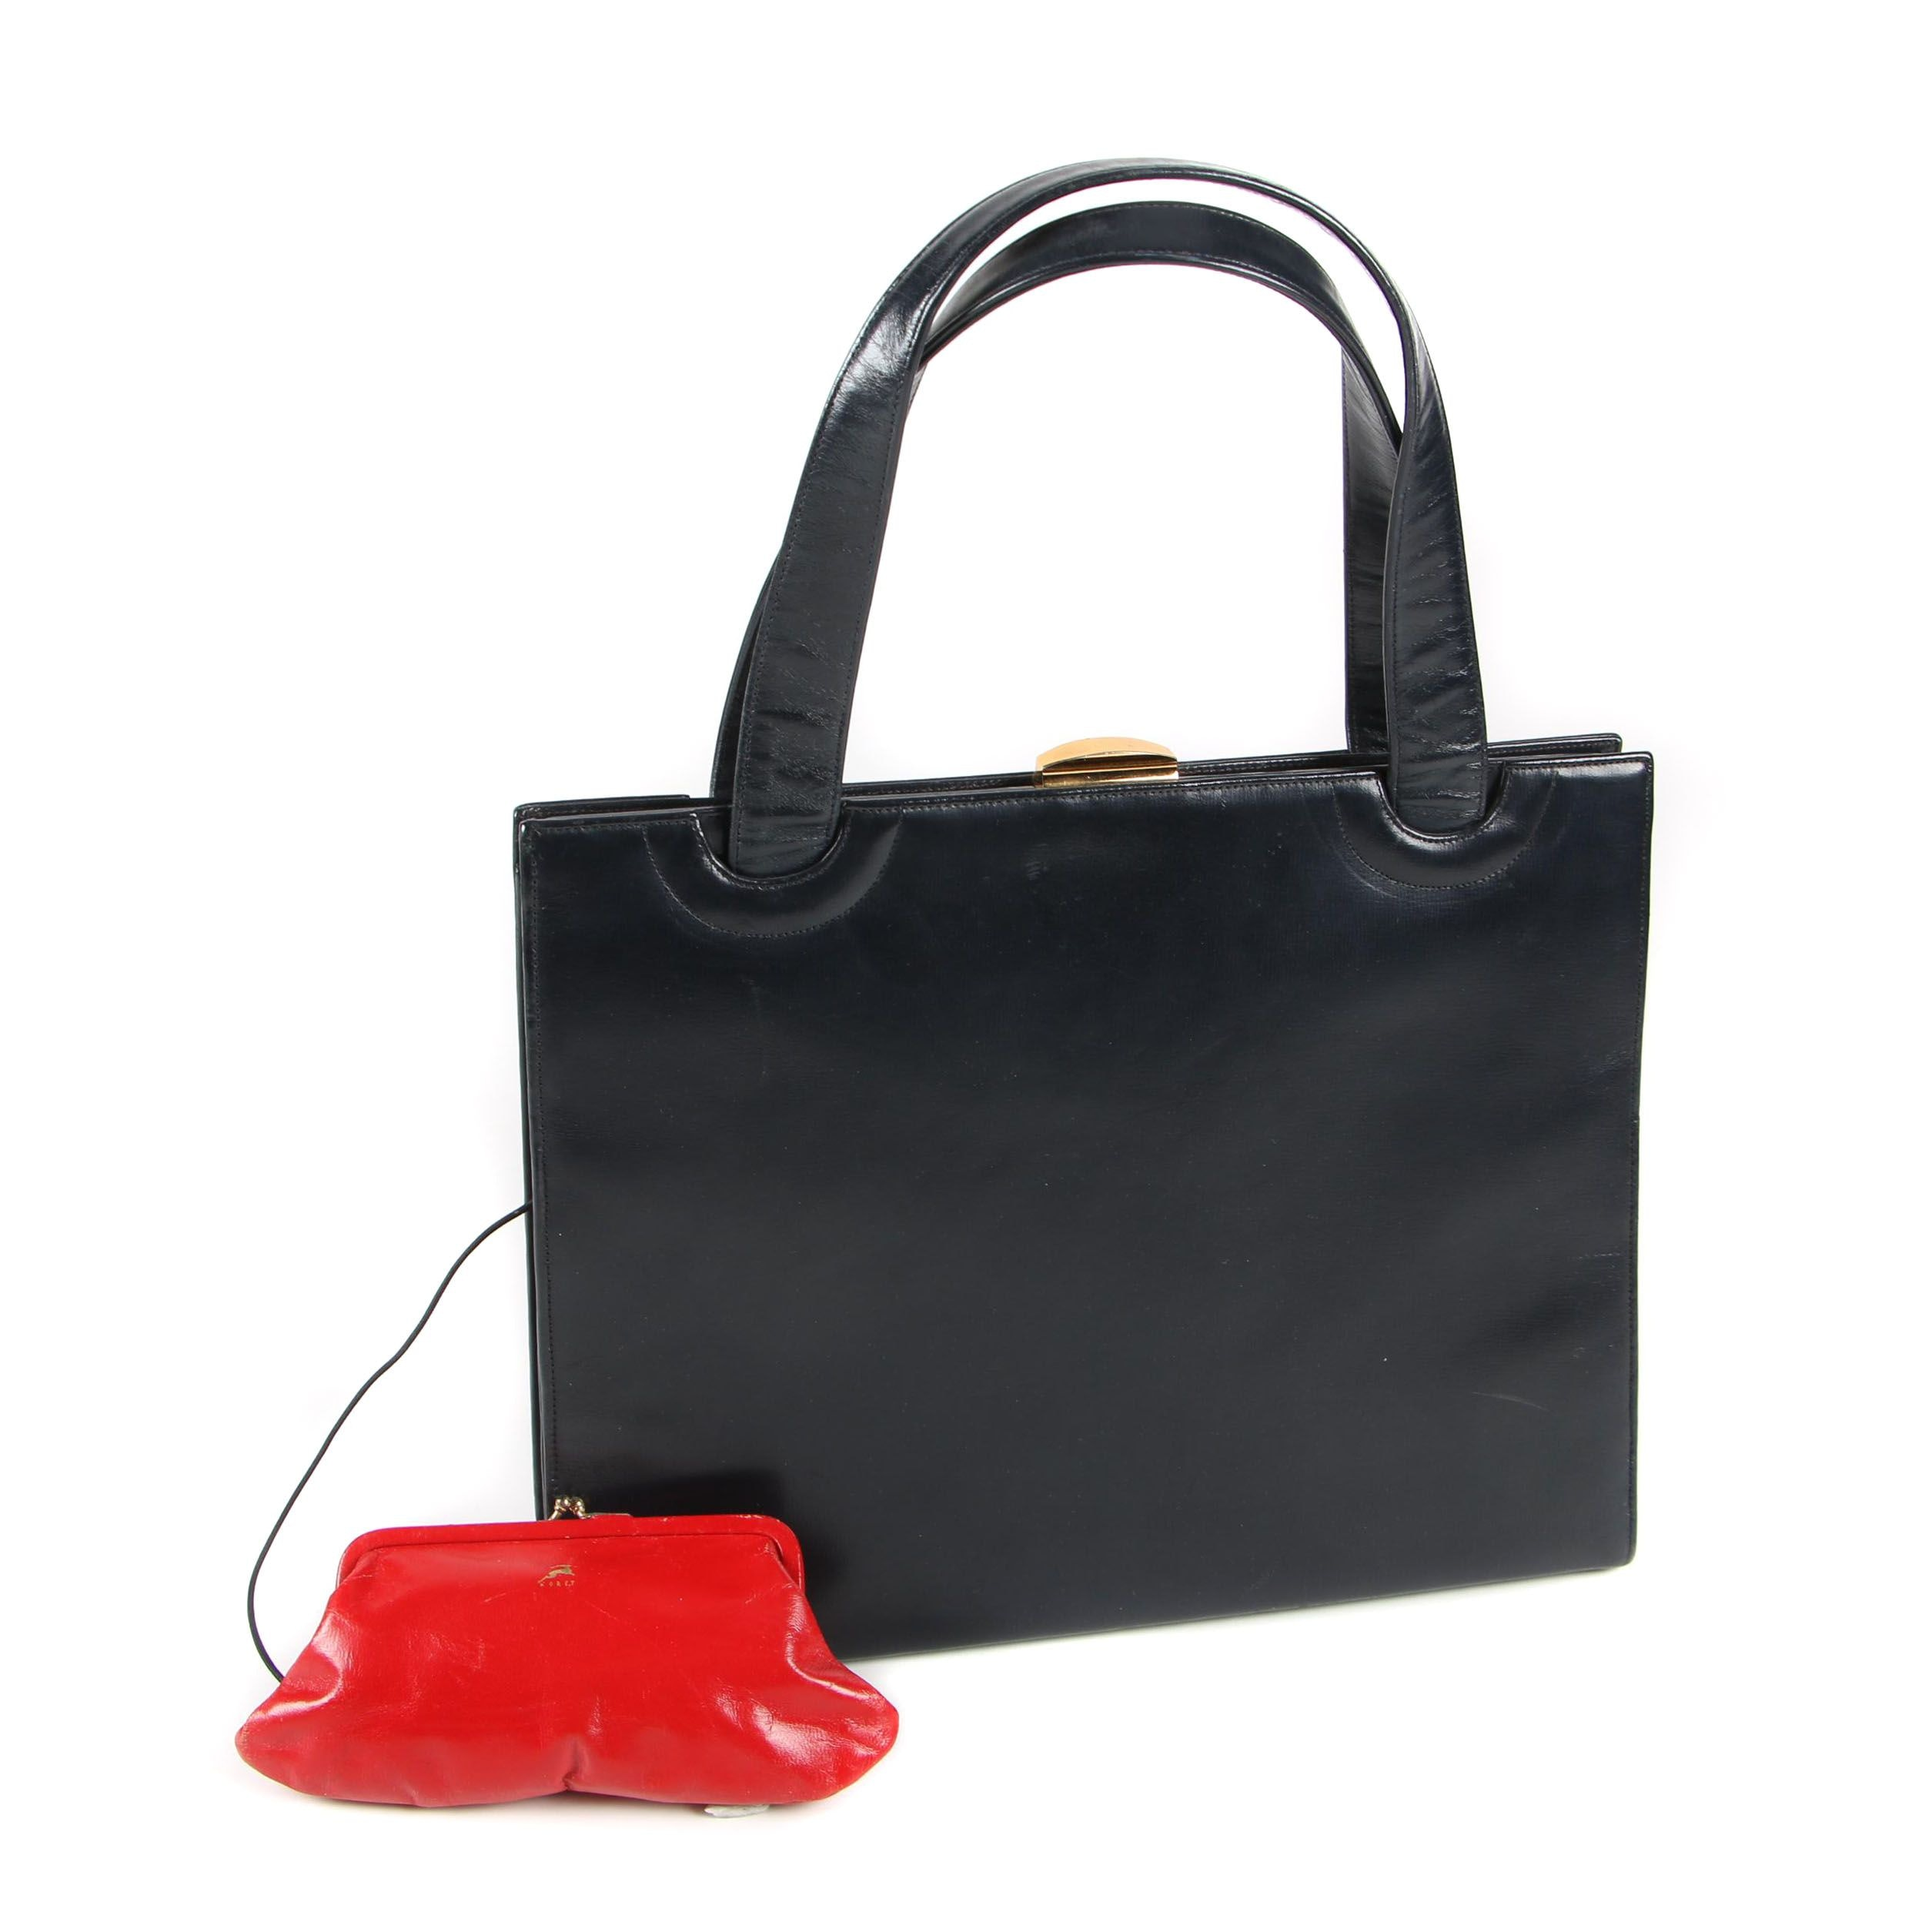 Koret Black and Red All Leather Shoulder Bag with Gold Tone Clasp, 1960s Vintage